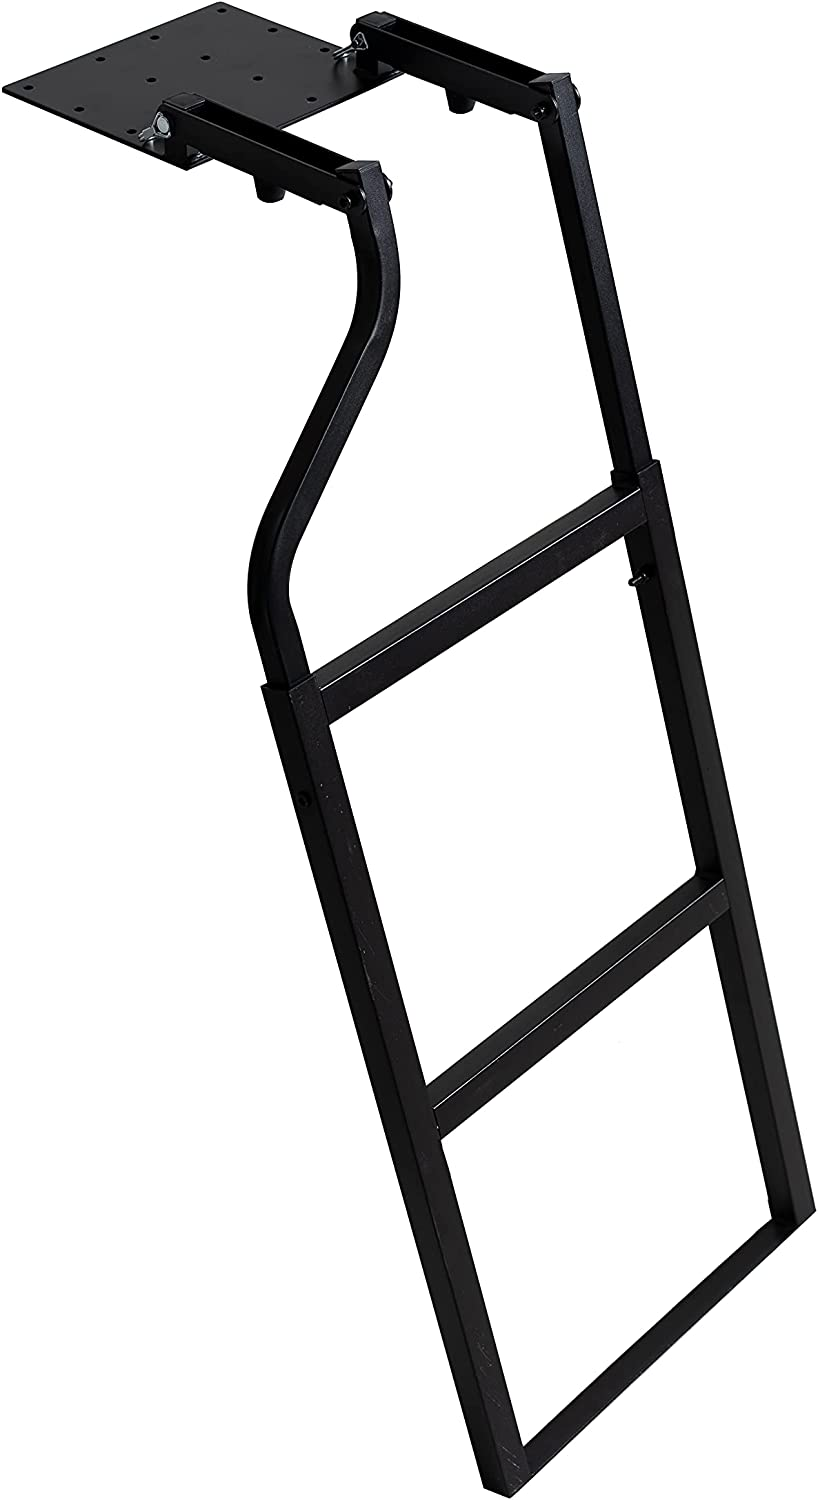 Traxion 5-100 Tailgate New Orleans Bargain sale Mall Black Ladder